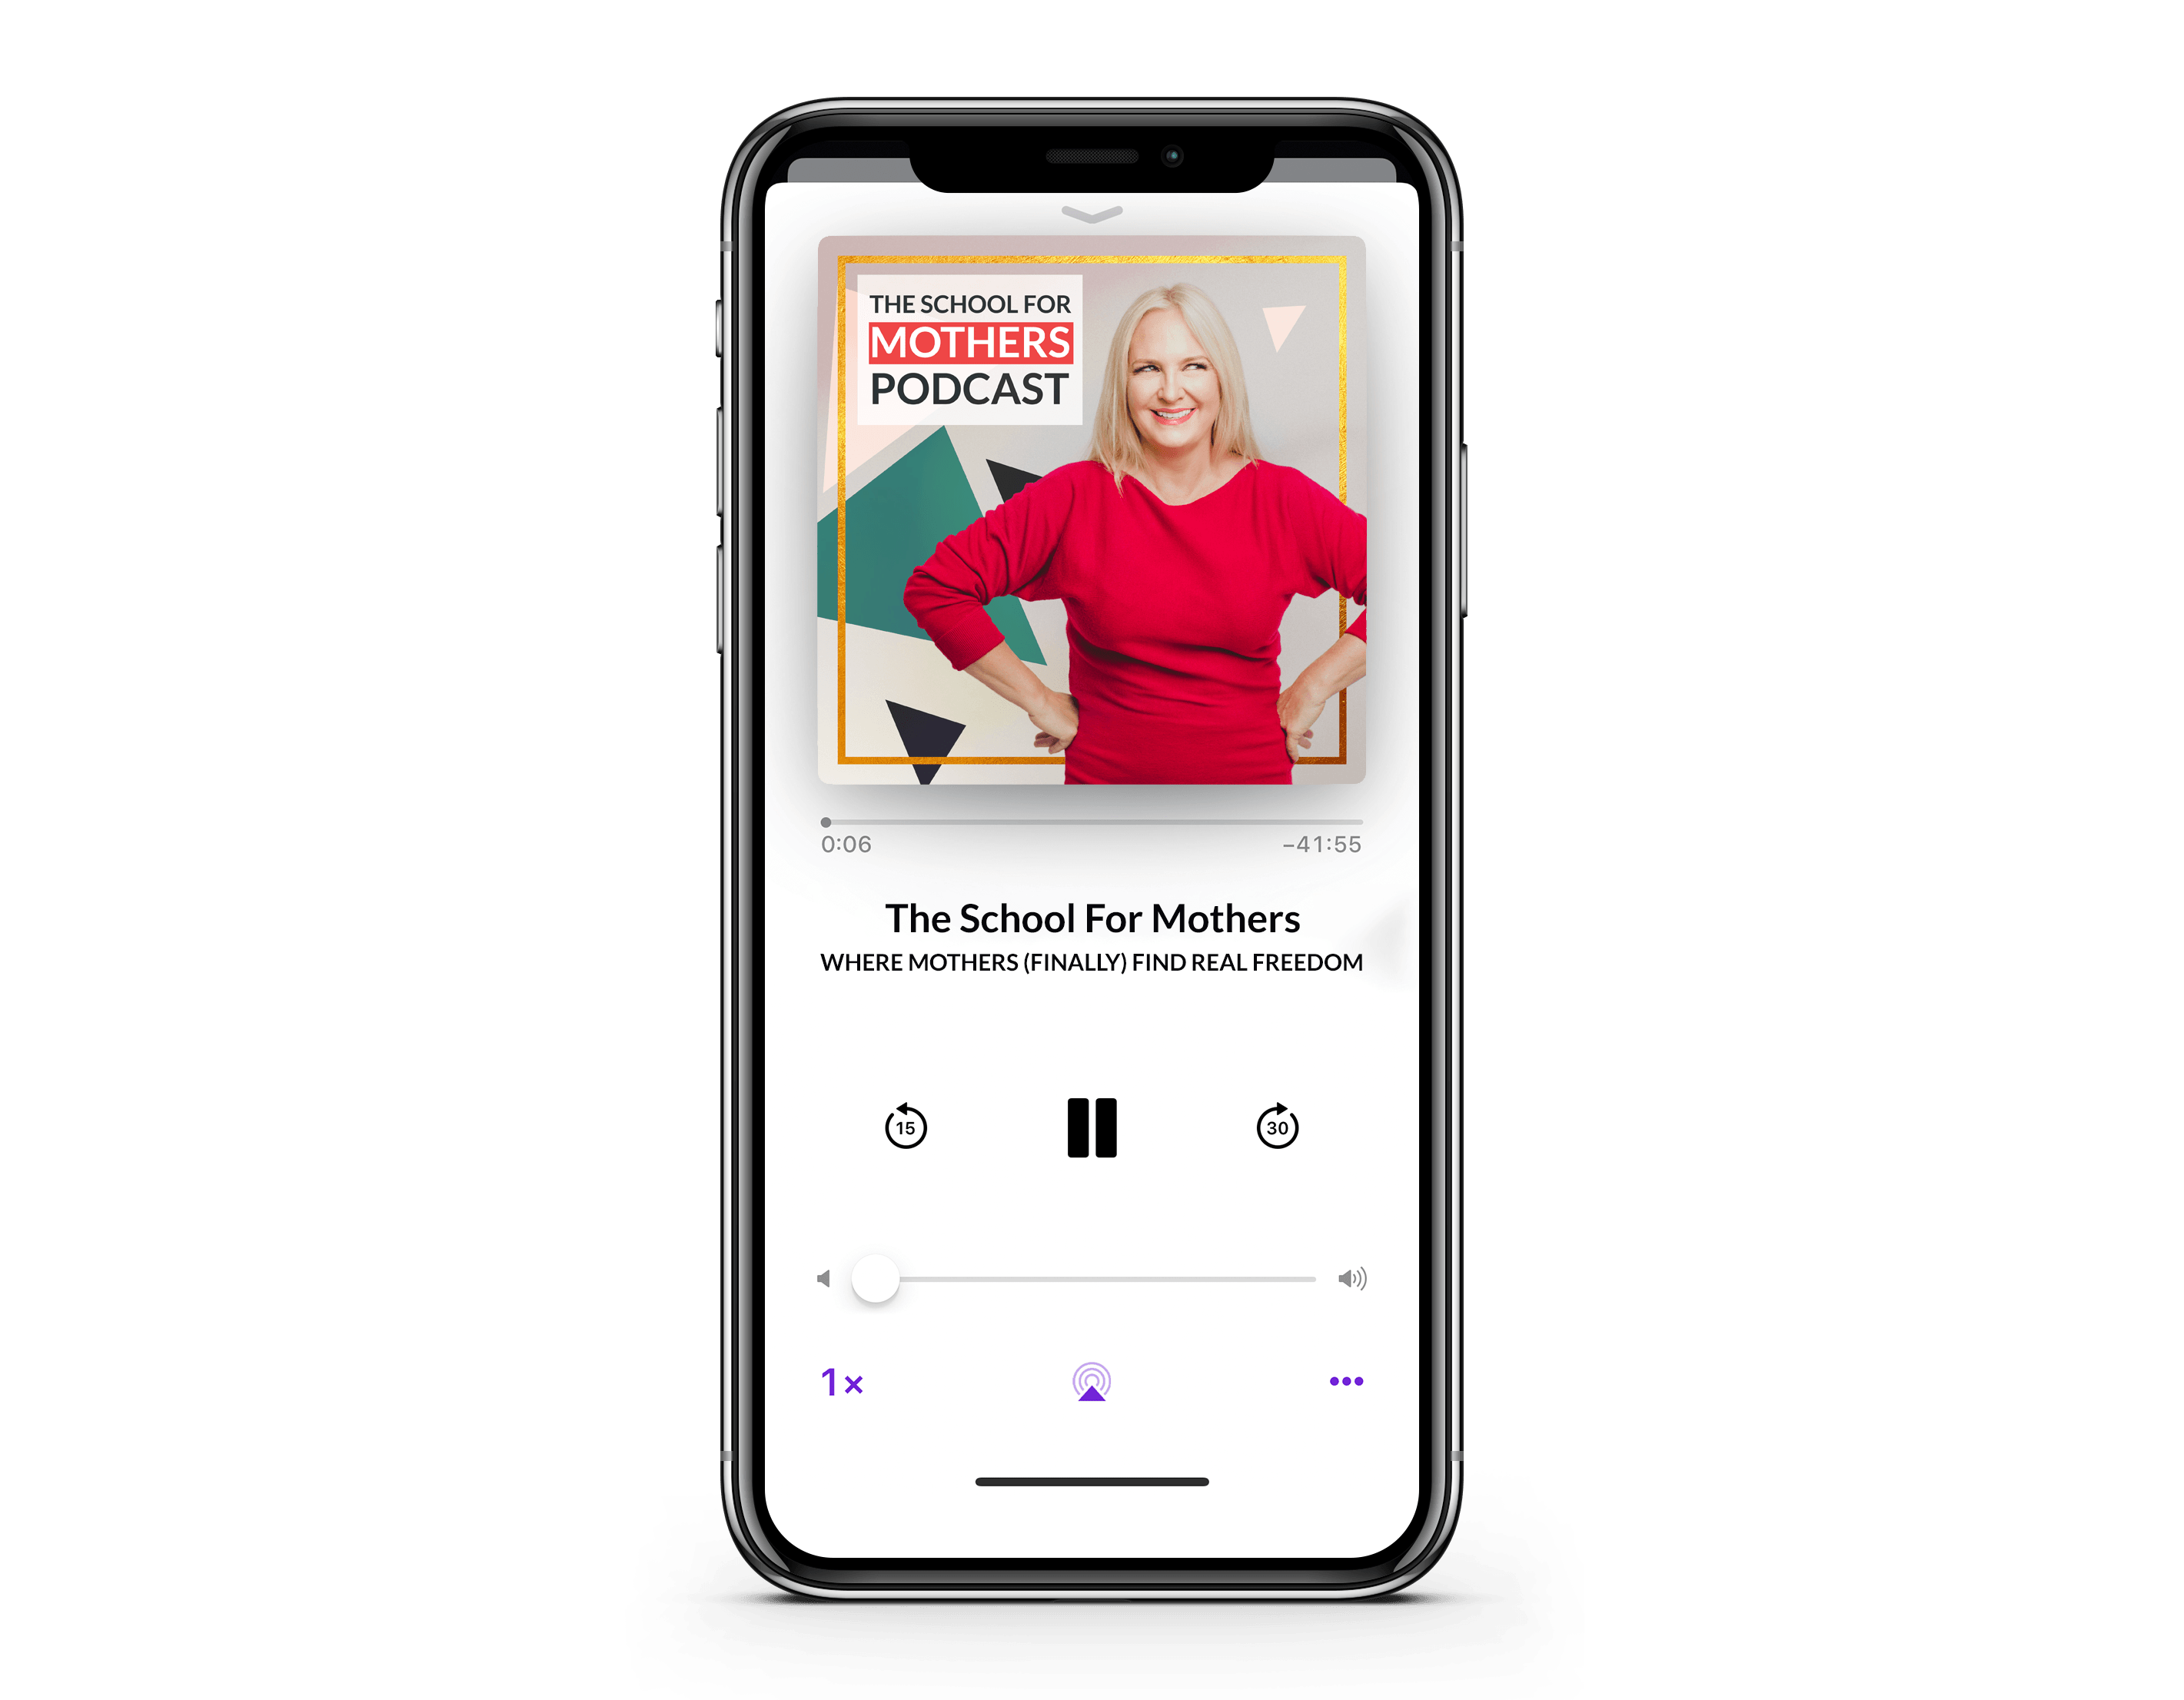 School For Mothers Podcast on iPhone